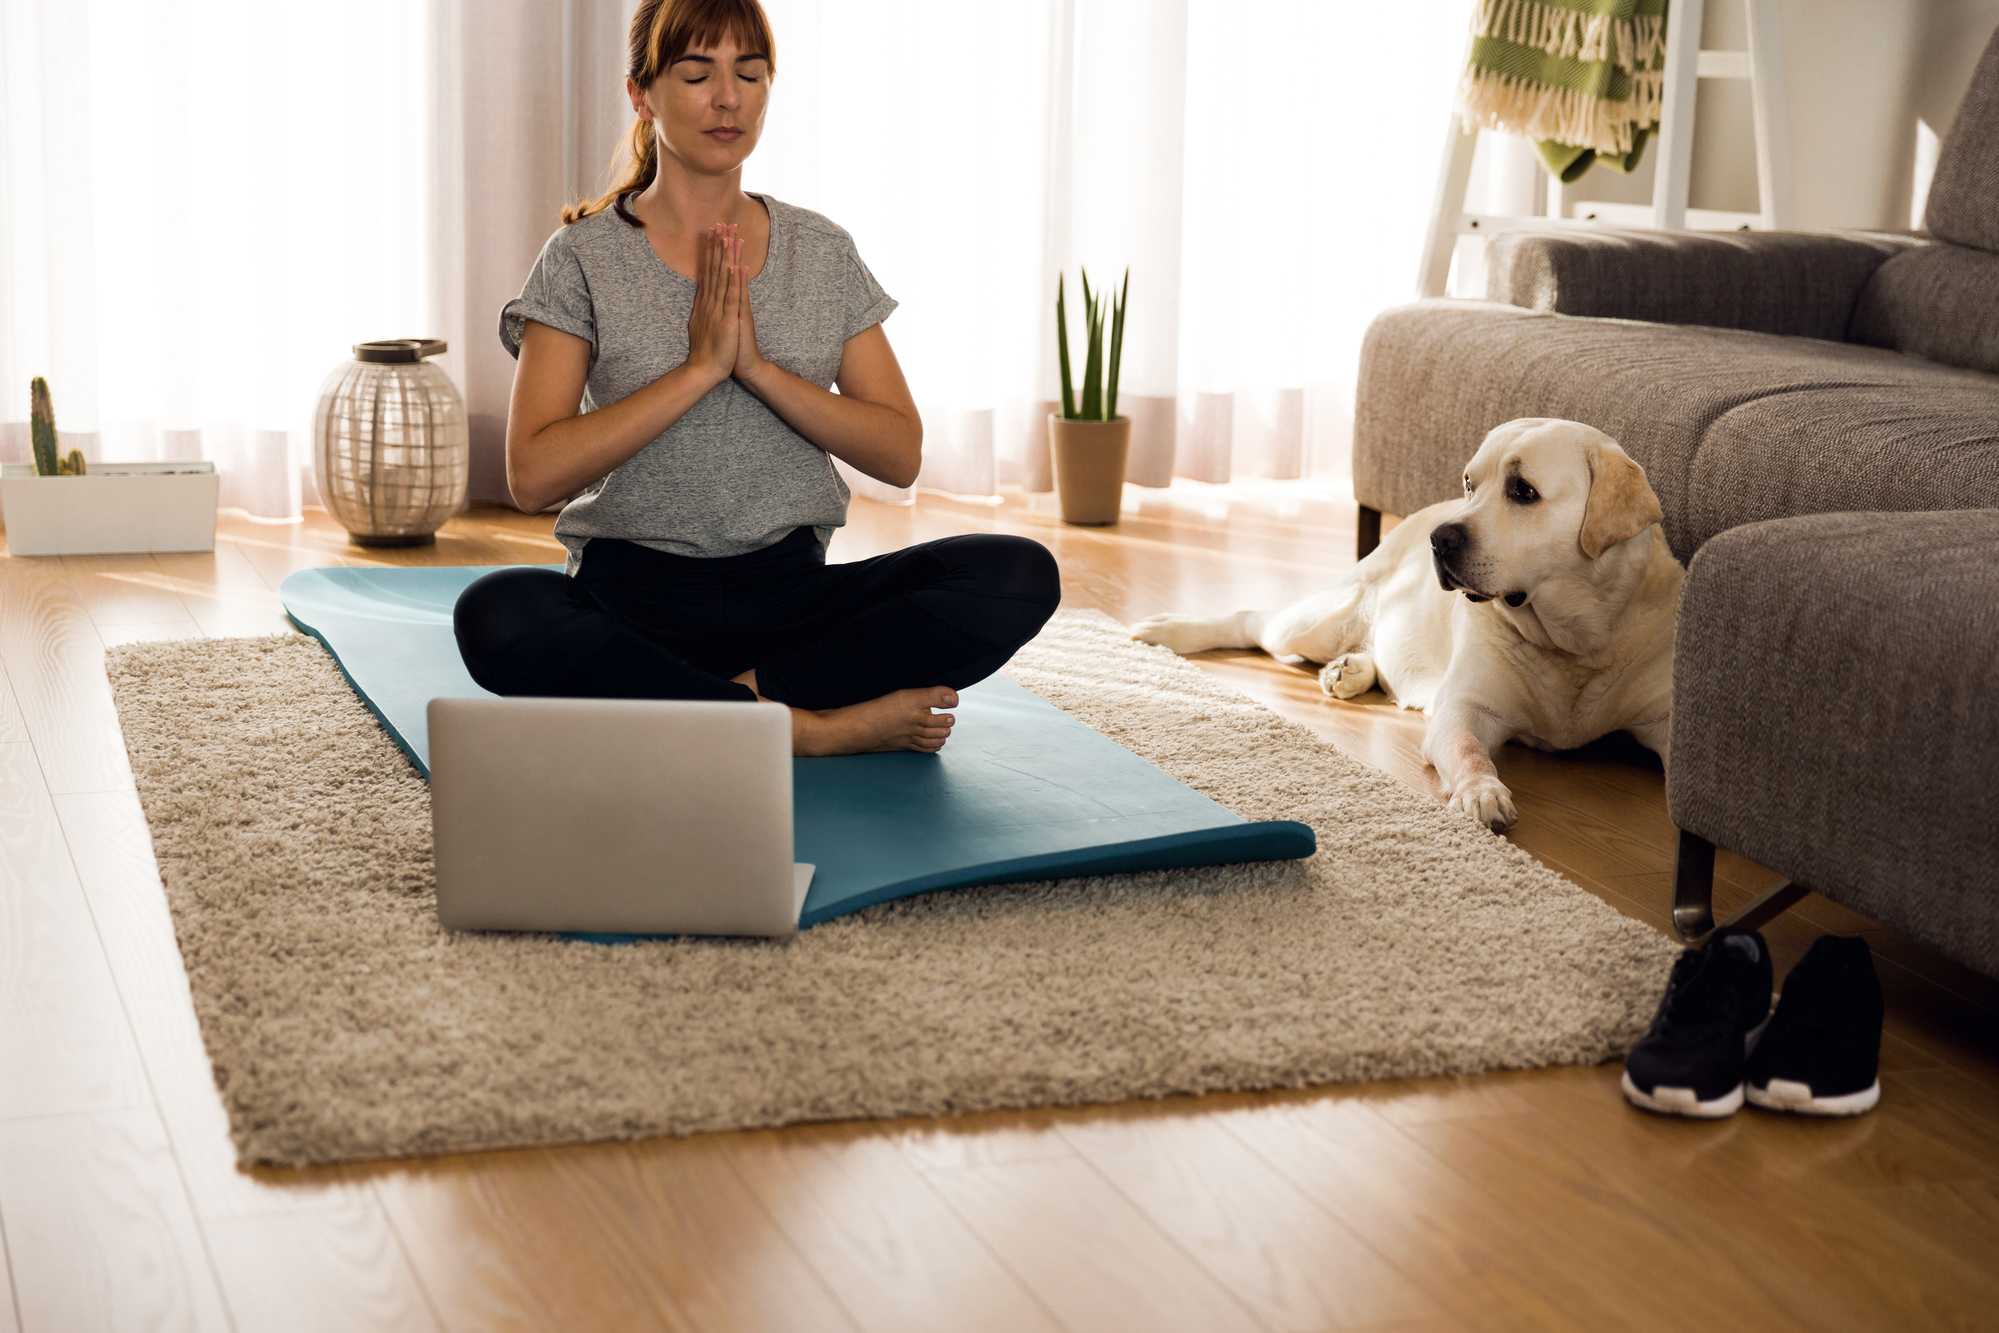 Best Yoga DVD for Weight Loss of 2019